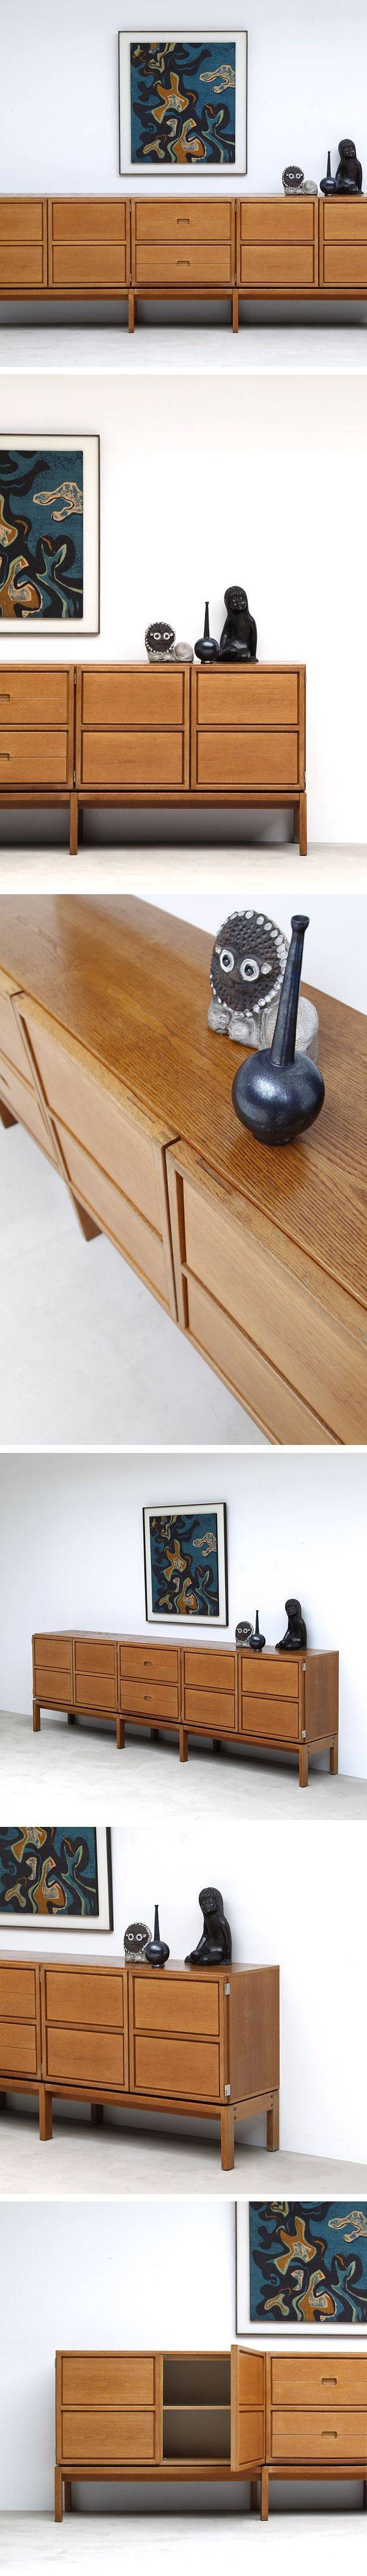 Best 20+ Large Sideboard Ideas On Pinterest | Large Console Table regarding Ready Assembled Sideboards (Image 3 of 30)